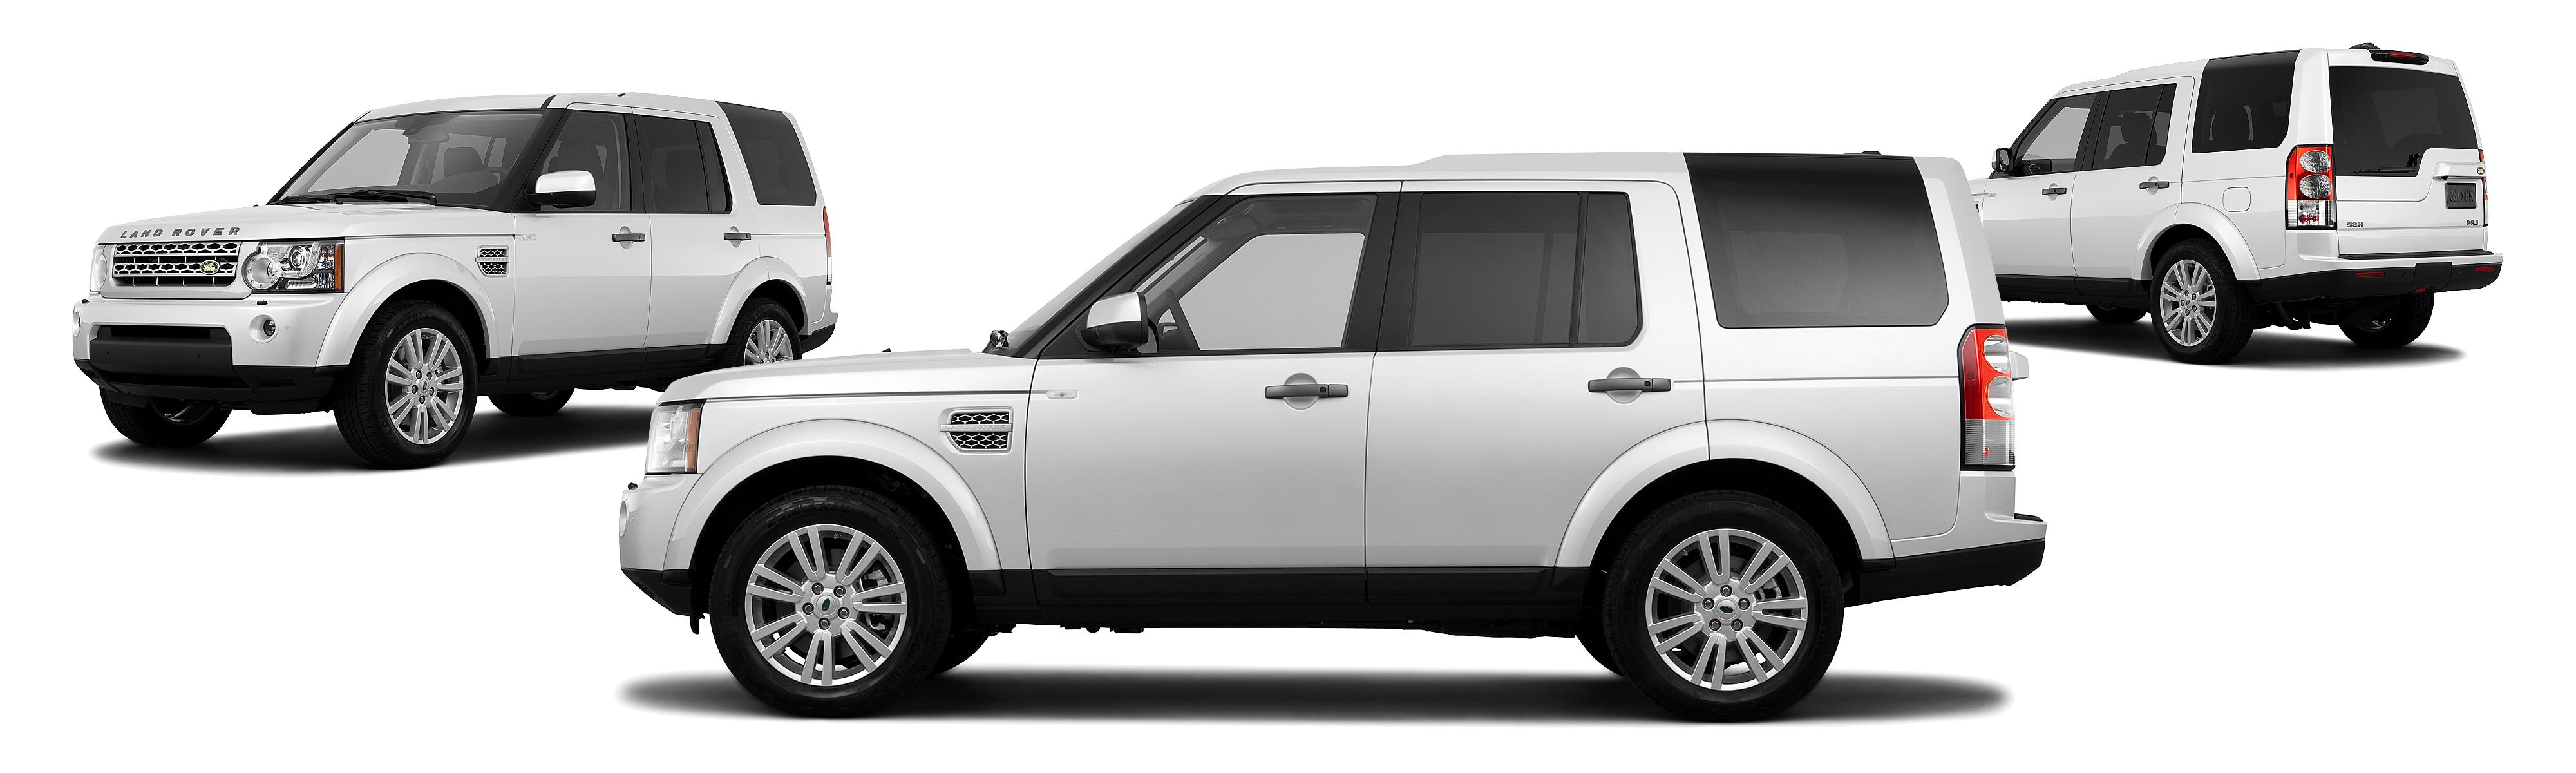 appeal boost land and rover graphite leasing new first vehicle blog landrover discovery lease landmark